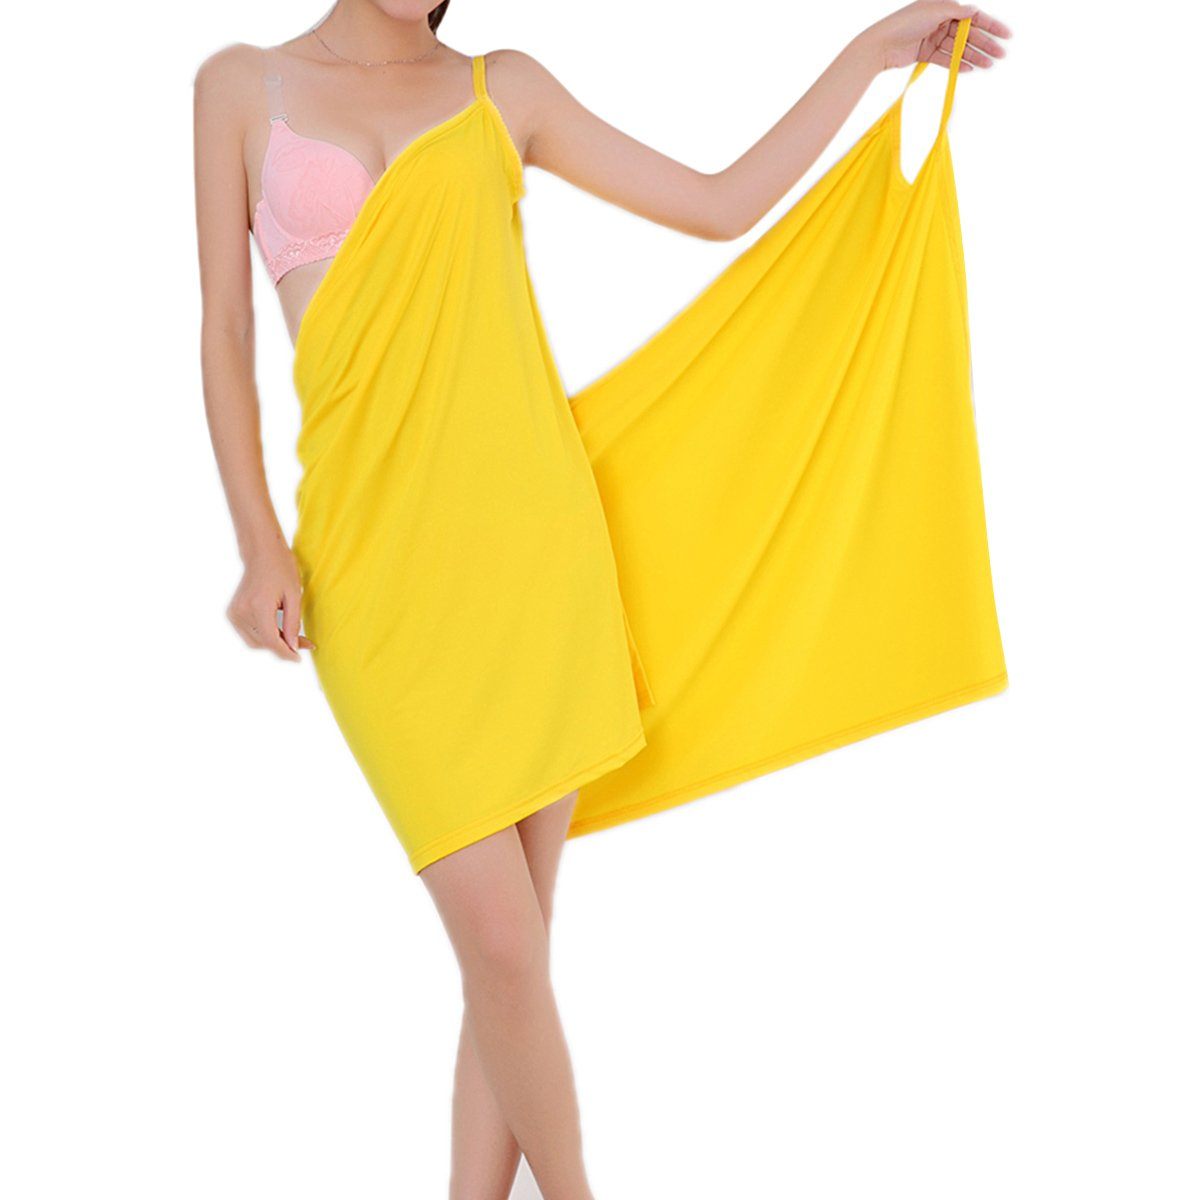 gracosy Beach Towel Wrap, Summer Ice Silk Soft Wearable Deep V Sexy Beach Dress Robe Towel Cover Up for Travel Spa Swimming Sport for Girl Ladies 55'' x 29'' Yellow 55'' X 29''